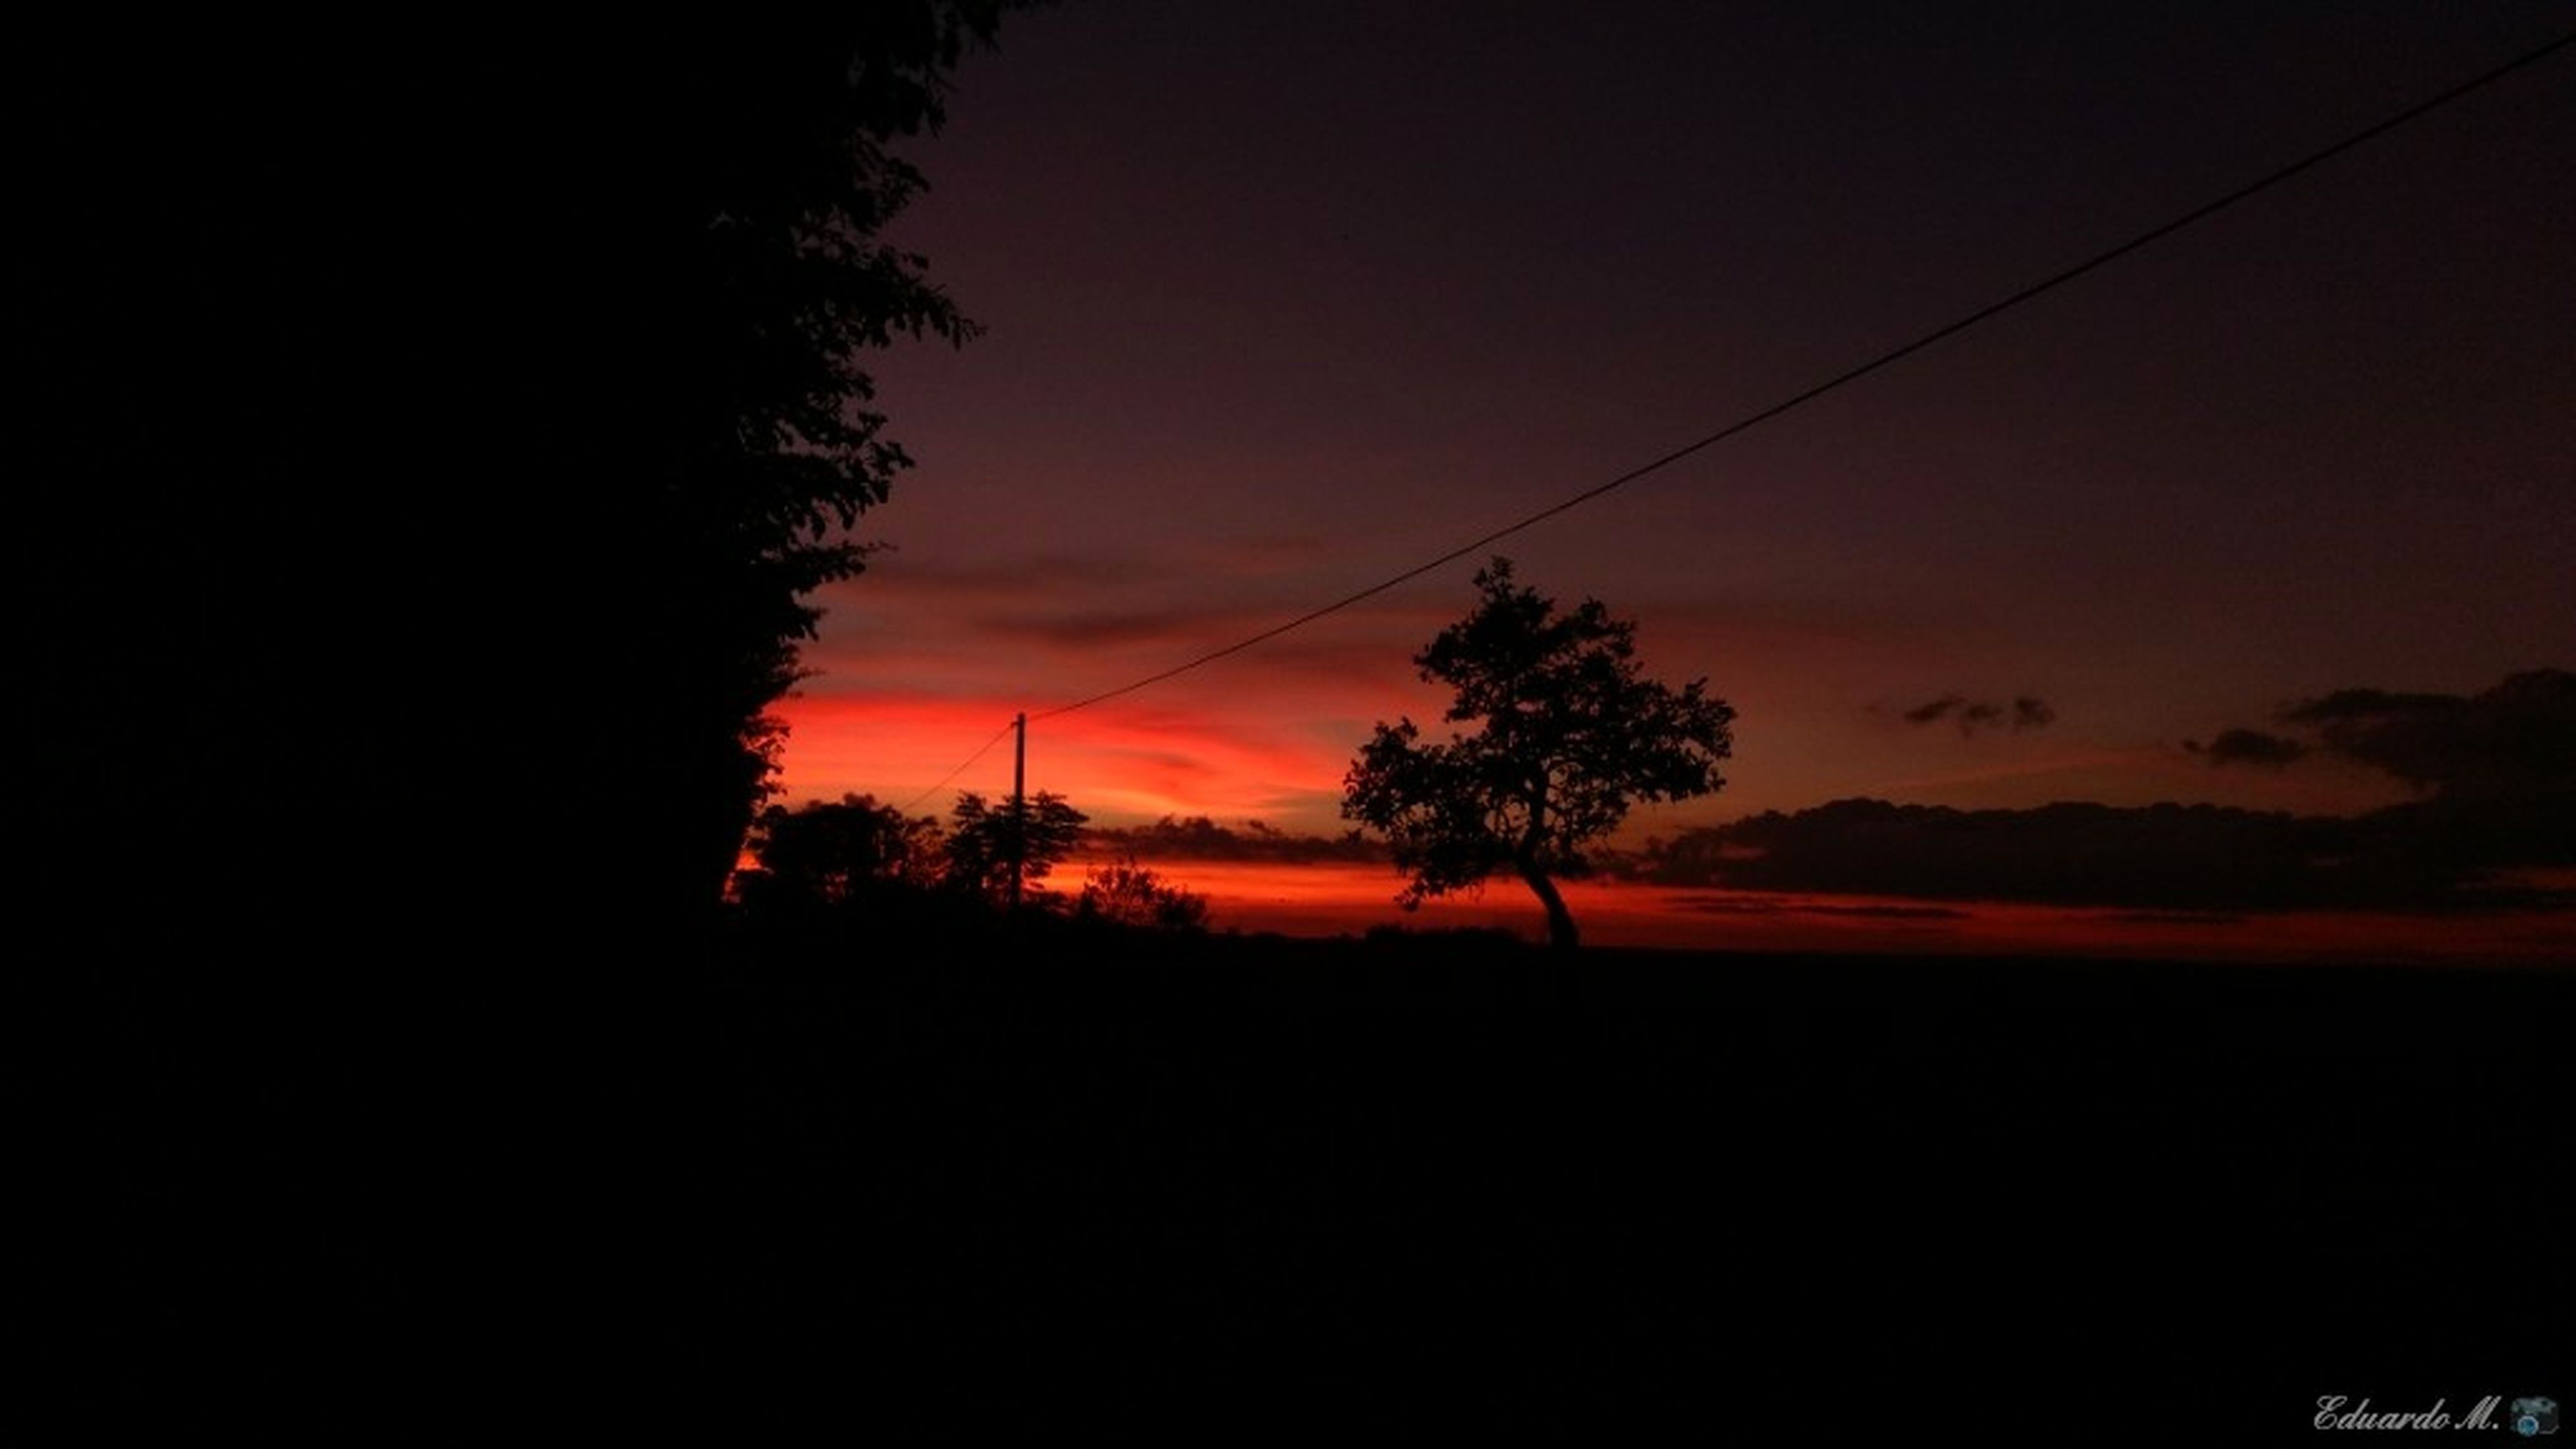 sunset, silhouette, tree, nature, dark, sky, landscape, scenics, beauty in nature, no people, clear sky, outdoors